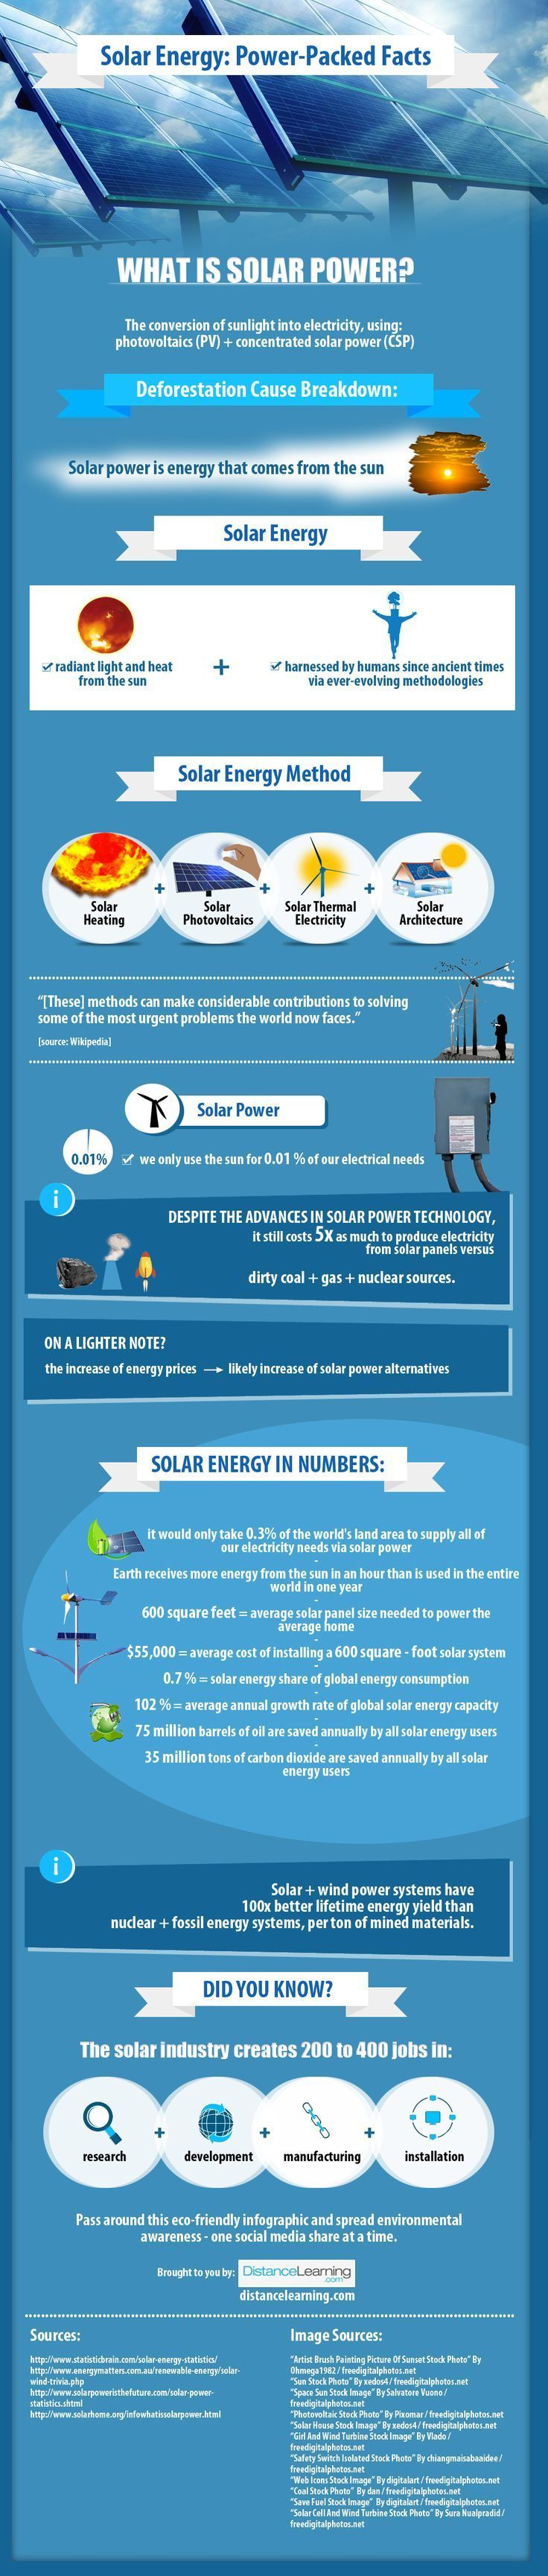 http://www.distancelearning.com/resources/solar-power-infographic/?utm_content=bufferaabb4&utm_medium=social&utm_source=pinterest.com&utm_campaign=buffer  Solar Energy: Power-Packed Facts [Infographic]